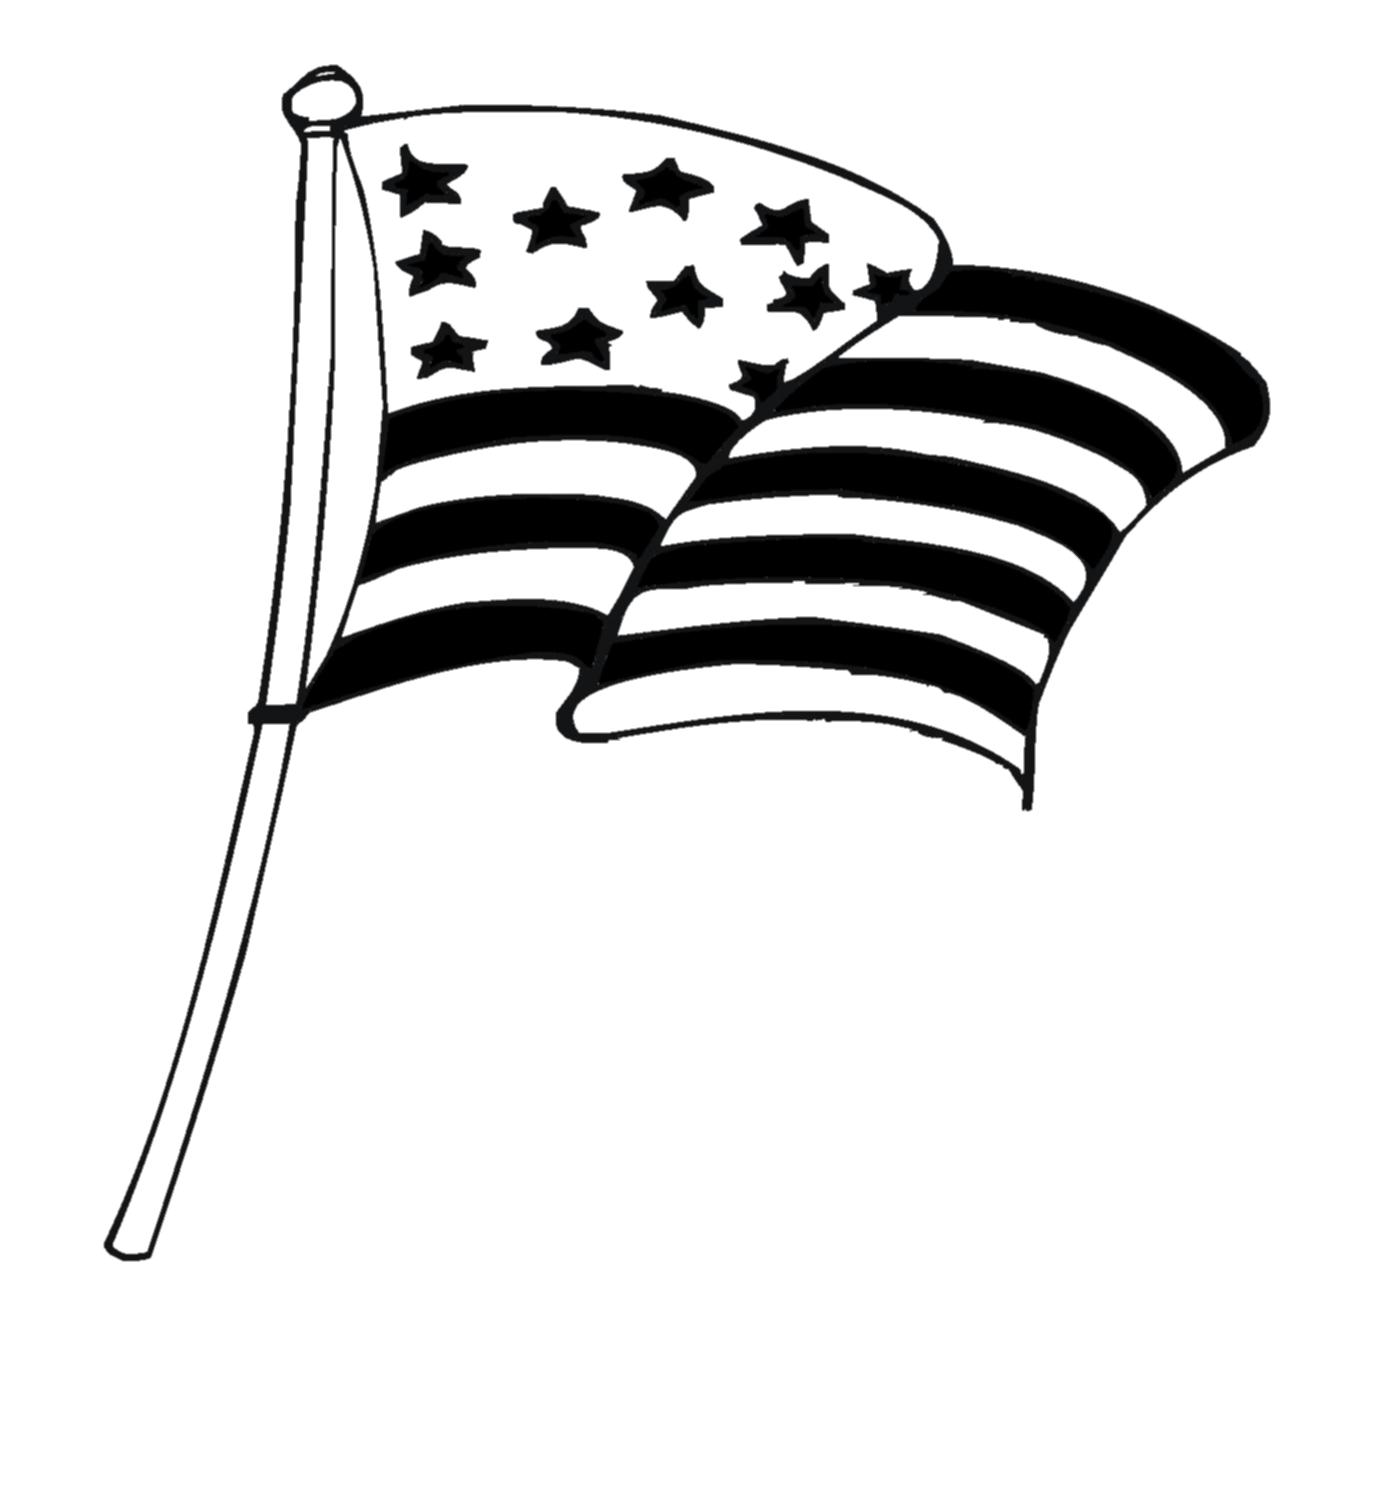 Library of united states of america flag free download black.